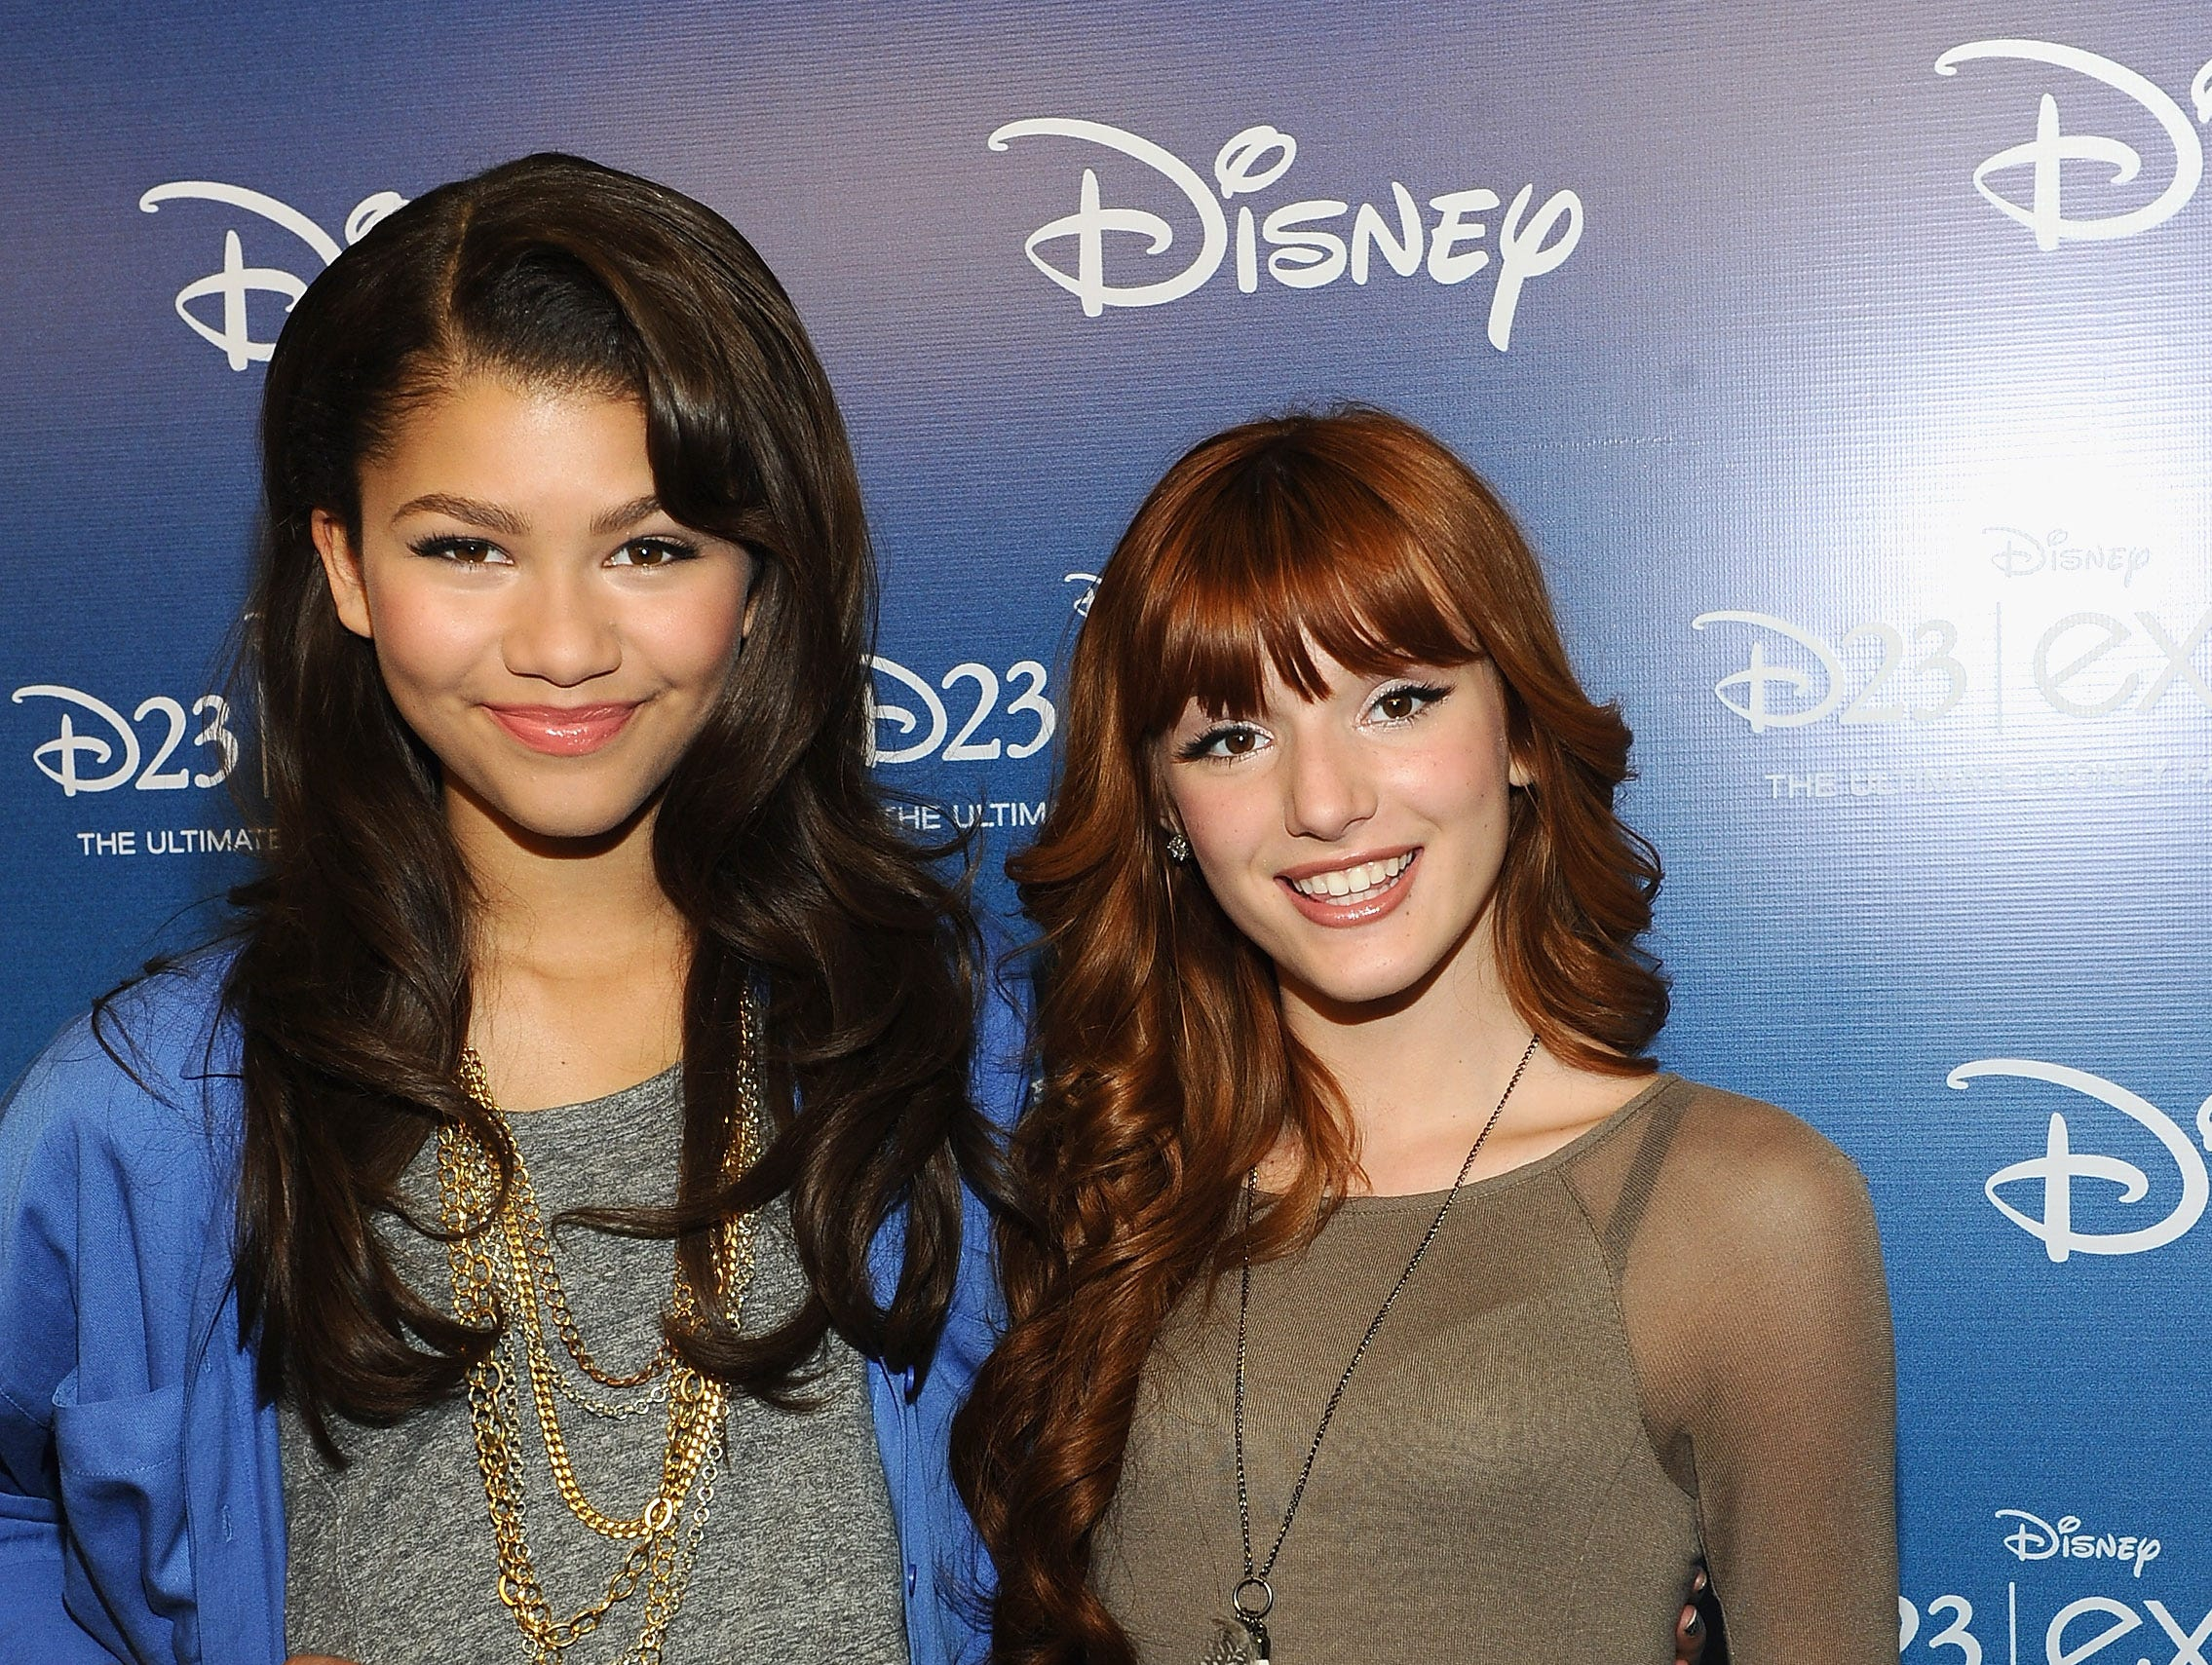 "ORG XMIT: 120673257 ANAHEIM, CA - AUGUST 21:  Actress Zendaya Coleman (L) and actress Bella Thorne arrive for the ""Shake It Up"" Panel during Disney's D23 Expo 2011 at the Anaheim Convention Center on August 21, 2011 in Anaheim, California.  (Photo by Michael Buckner/Getty Images) ORIG FILE ID: 121688941"